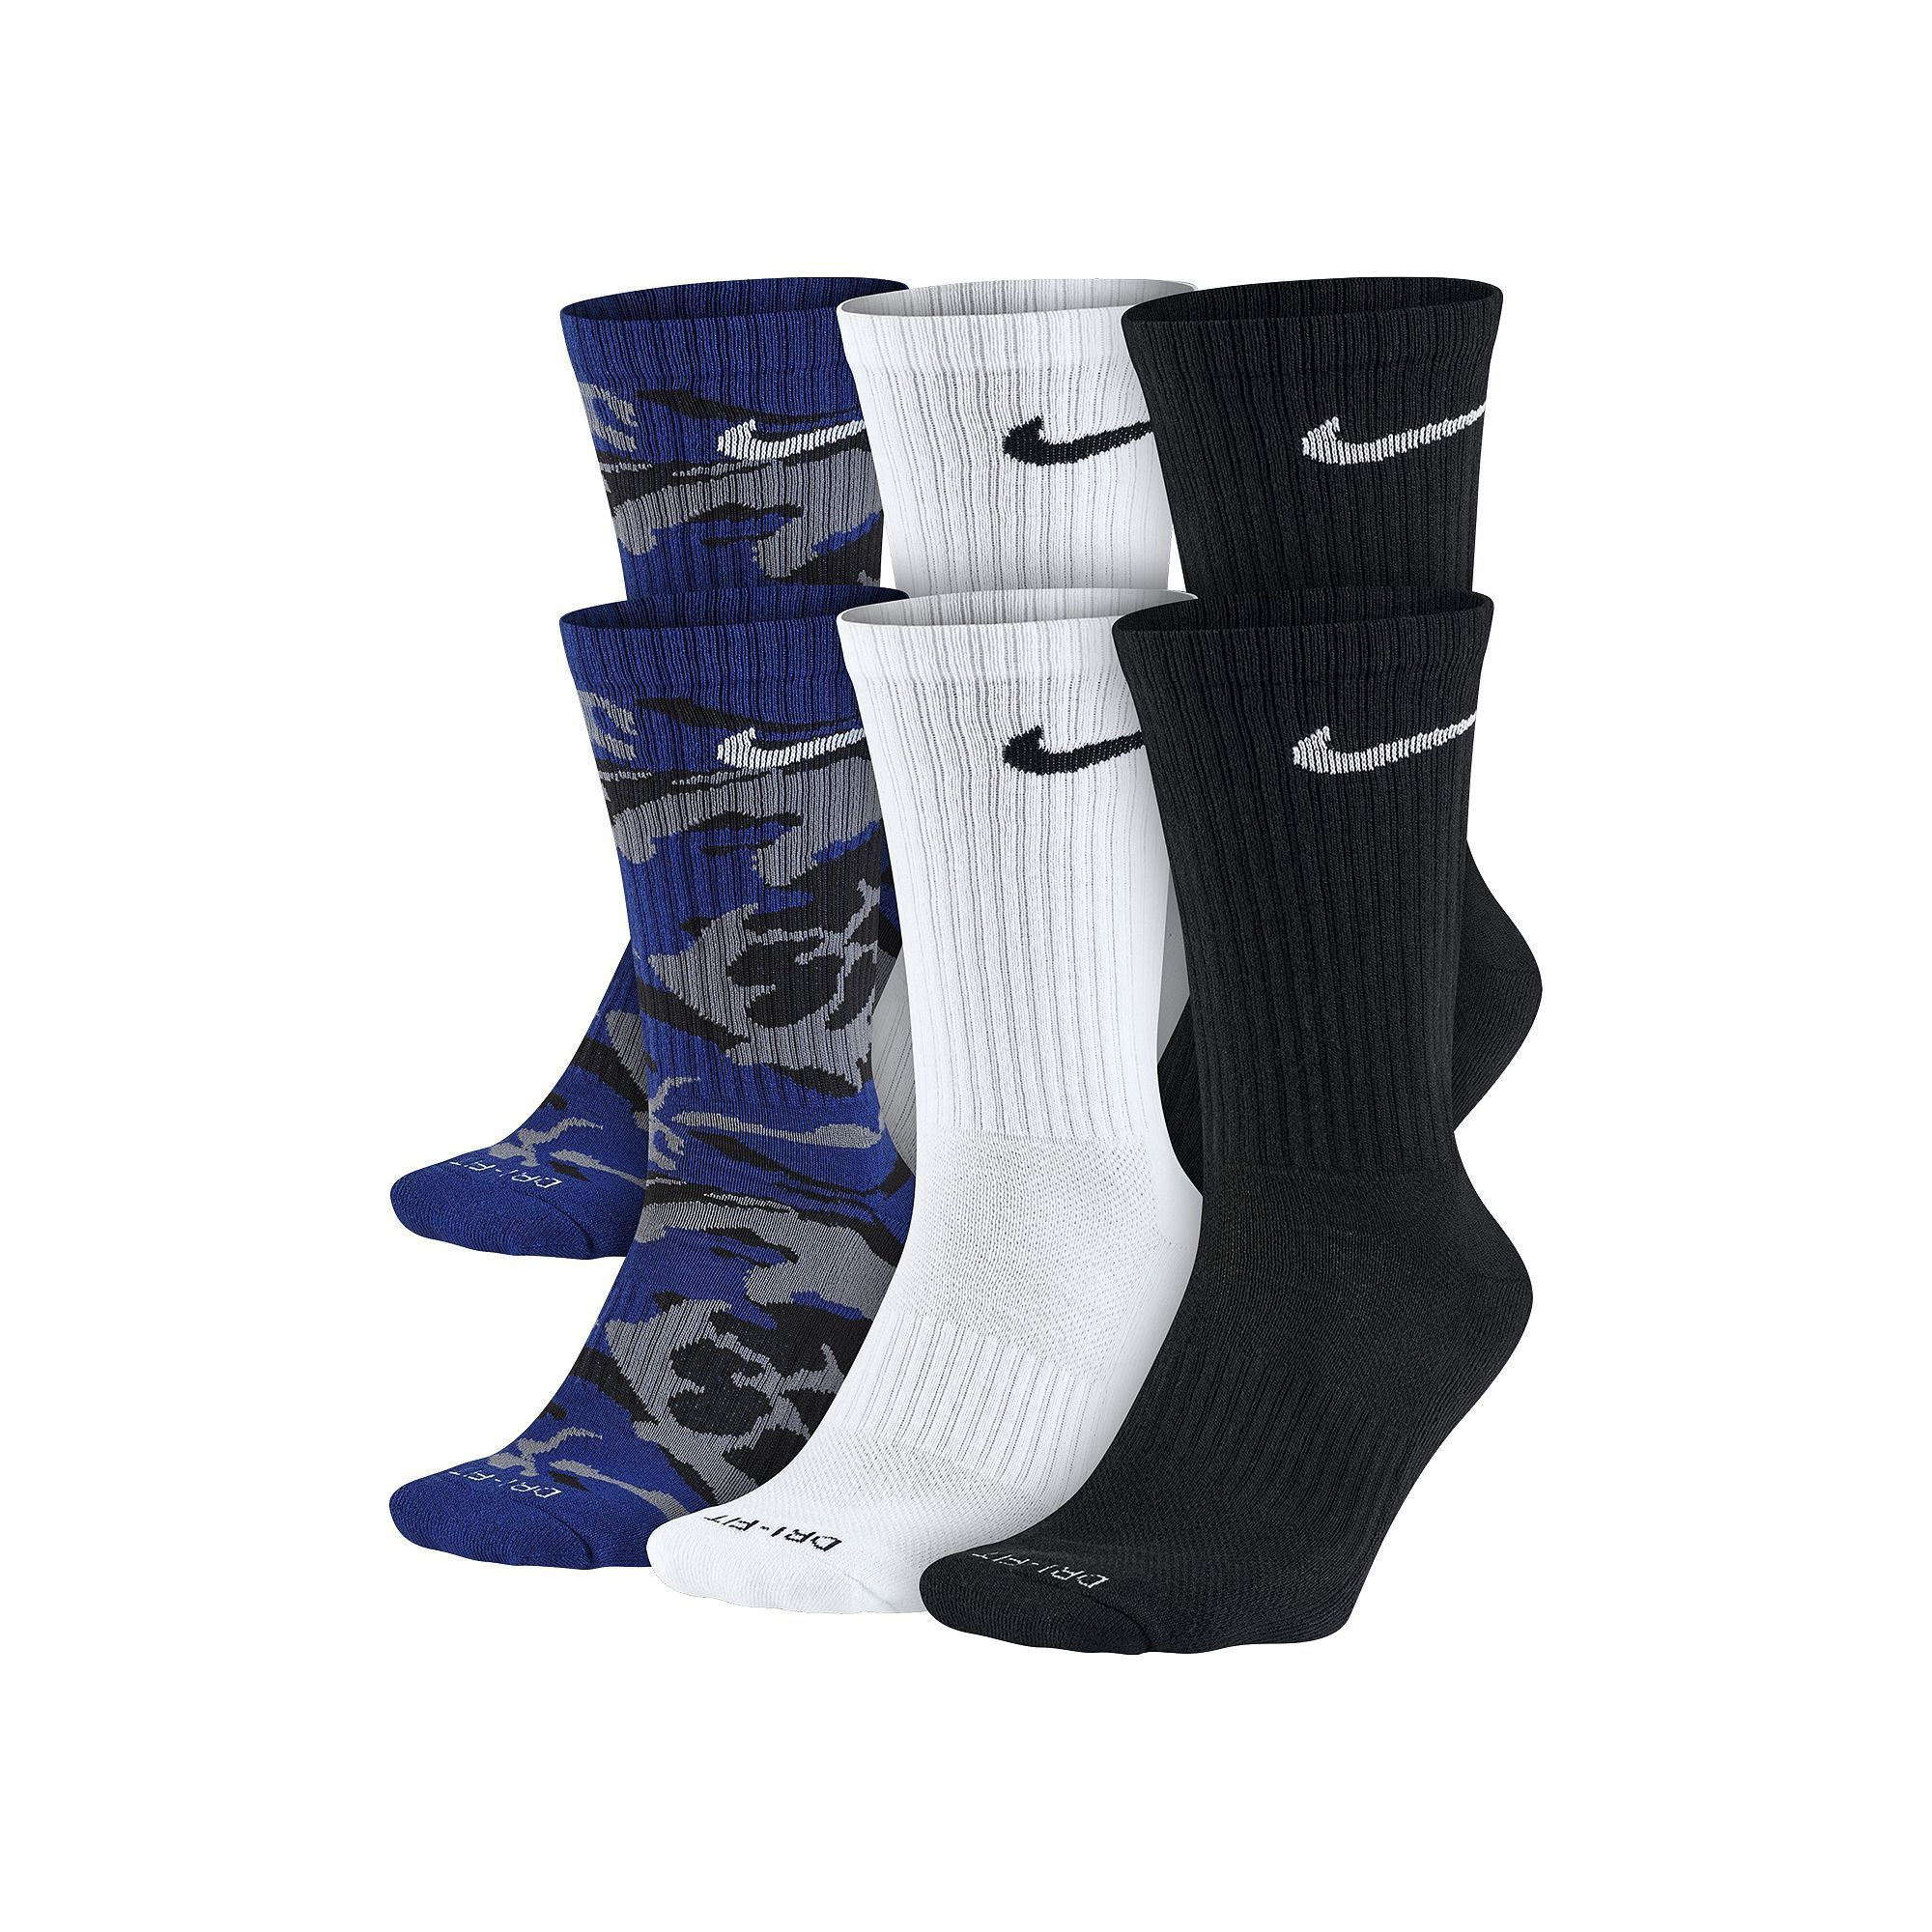 39499640eddba Men's Nike 6-pack Dri-FIT Performance Crew Socks | Products | Crew ...